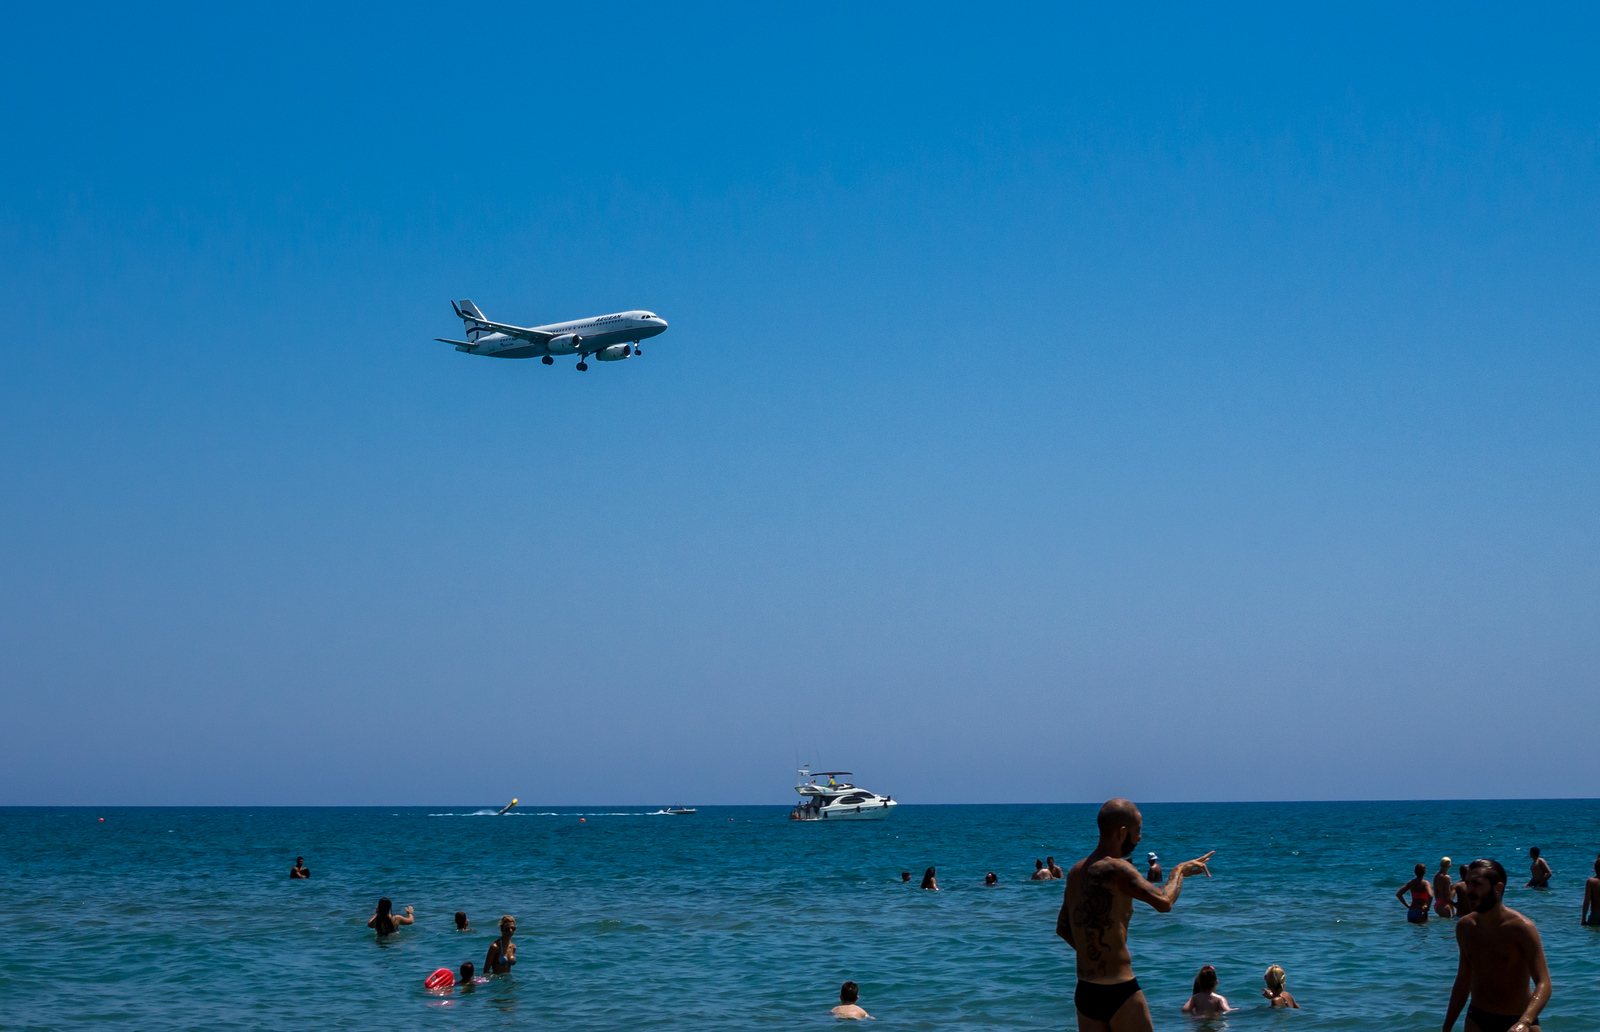 Plane landing over McKenzie beach